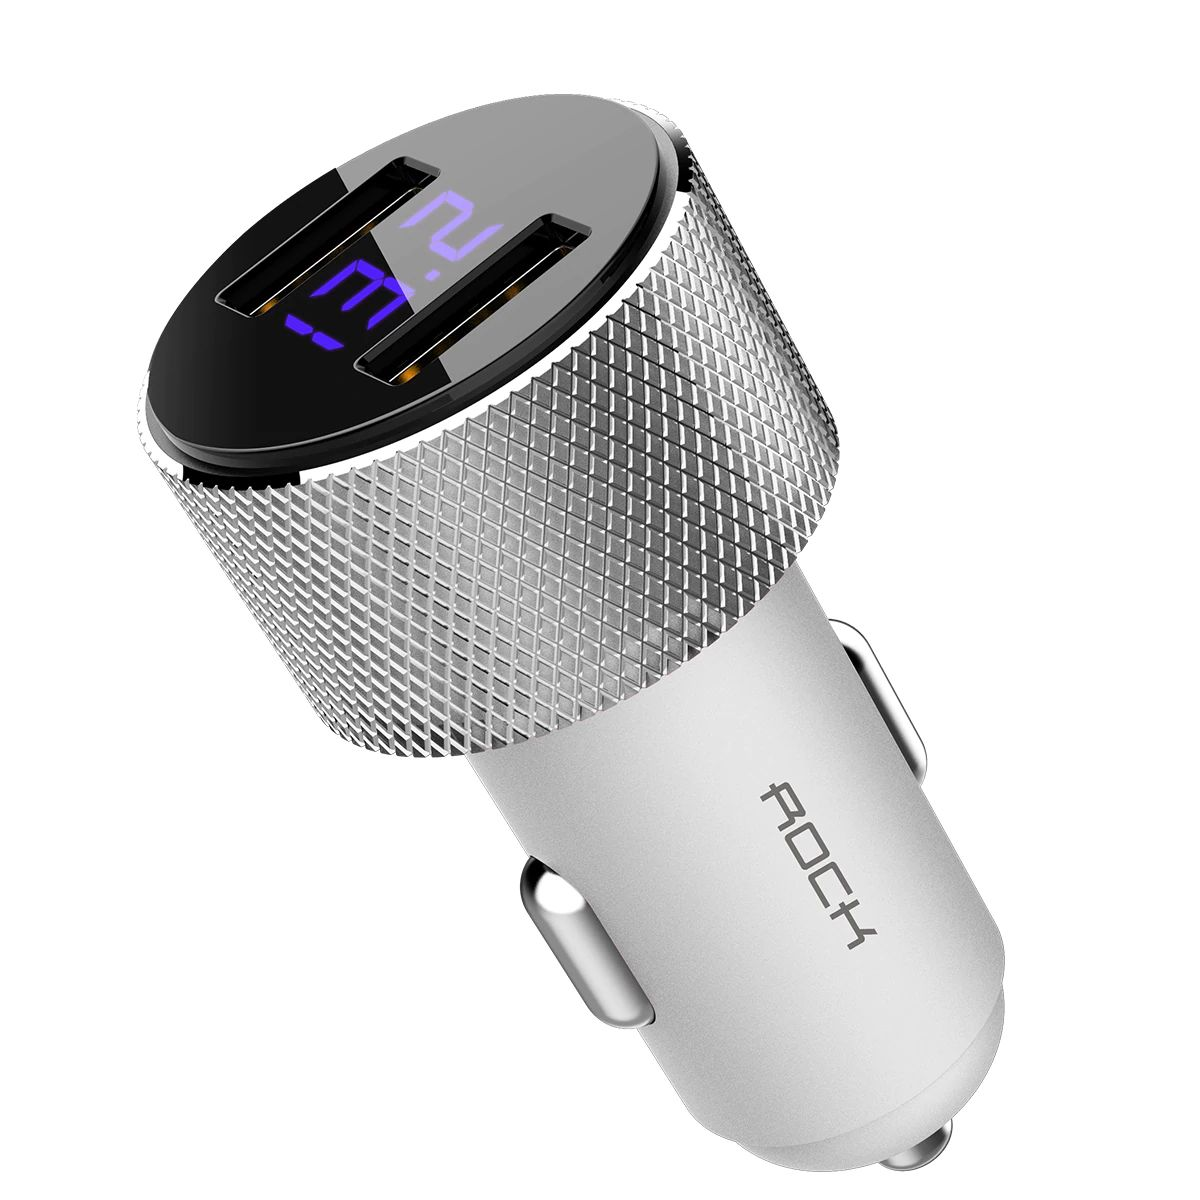 Rock Sitor Car Charger With Digital Display (8)